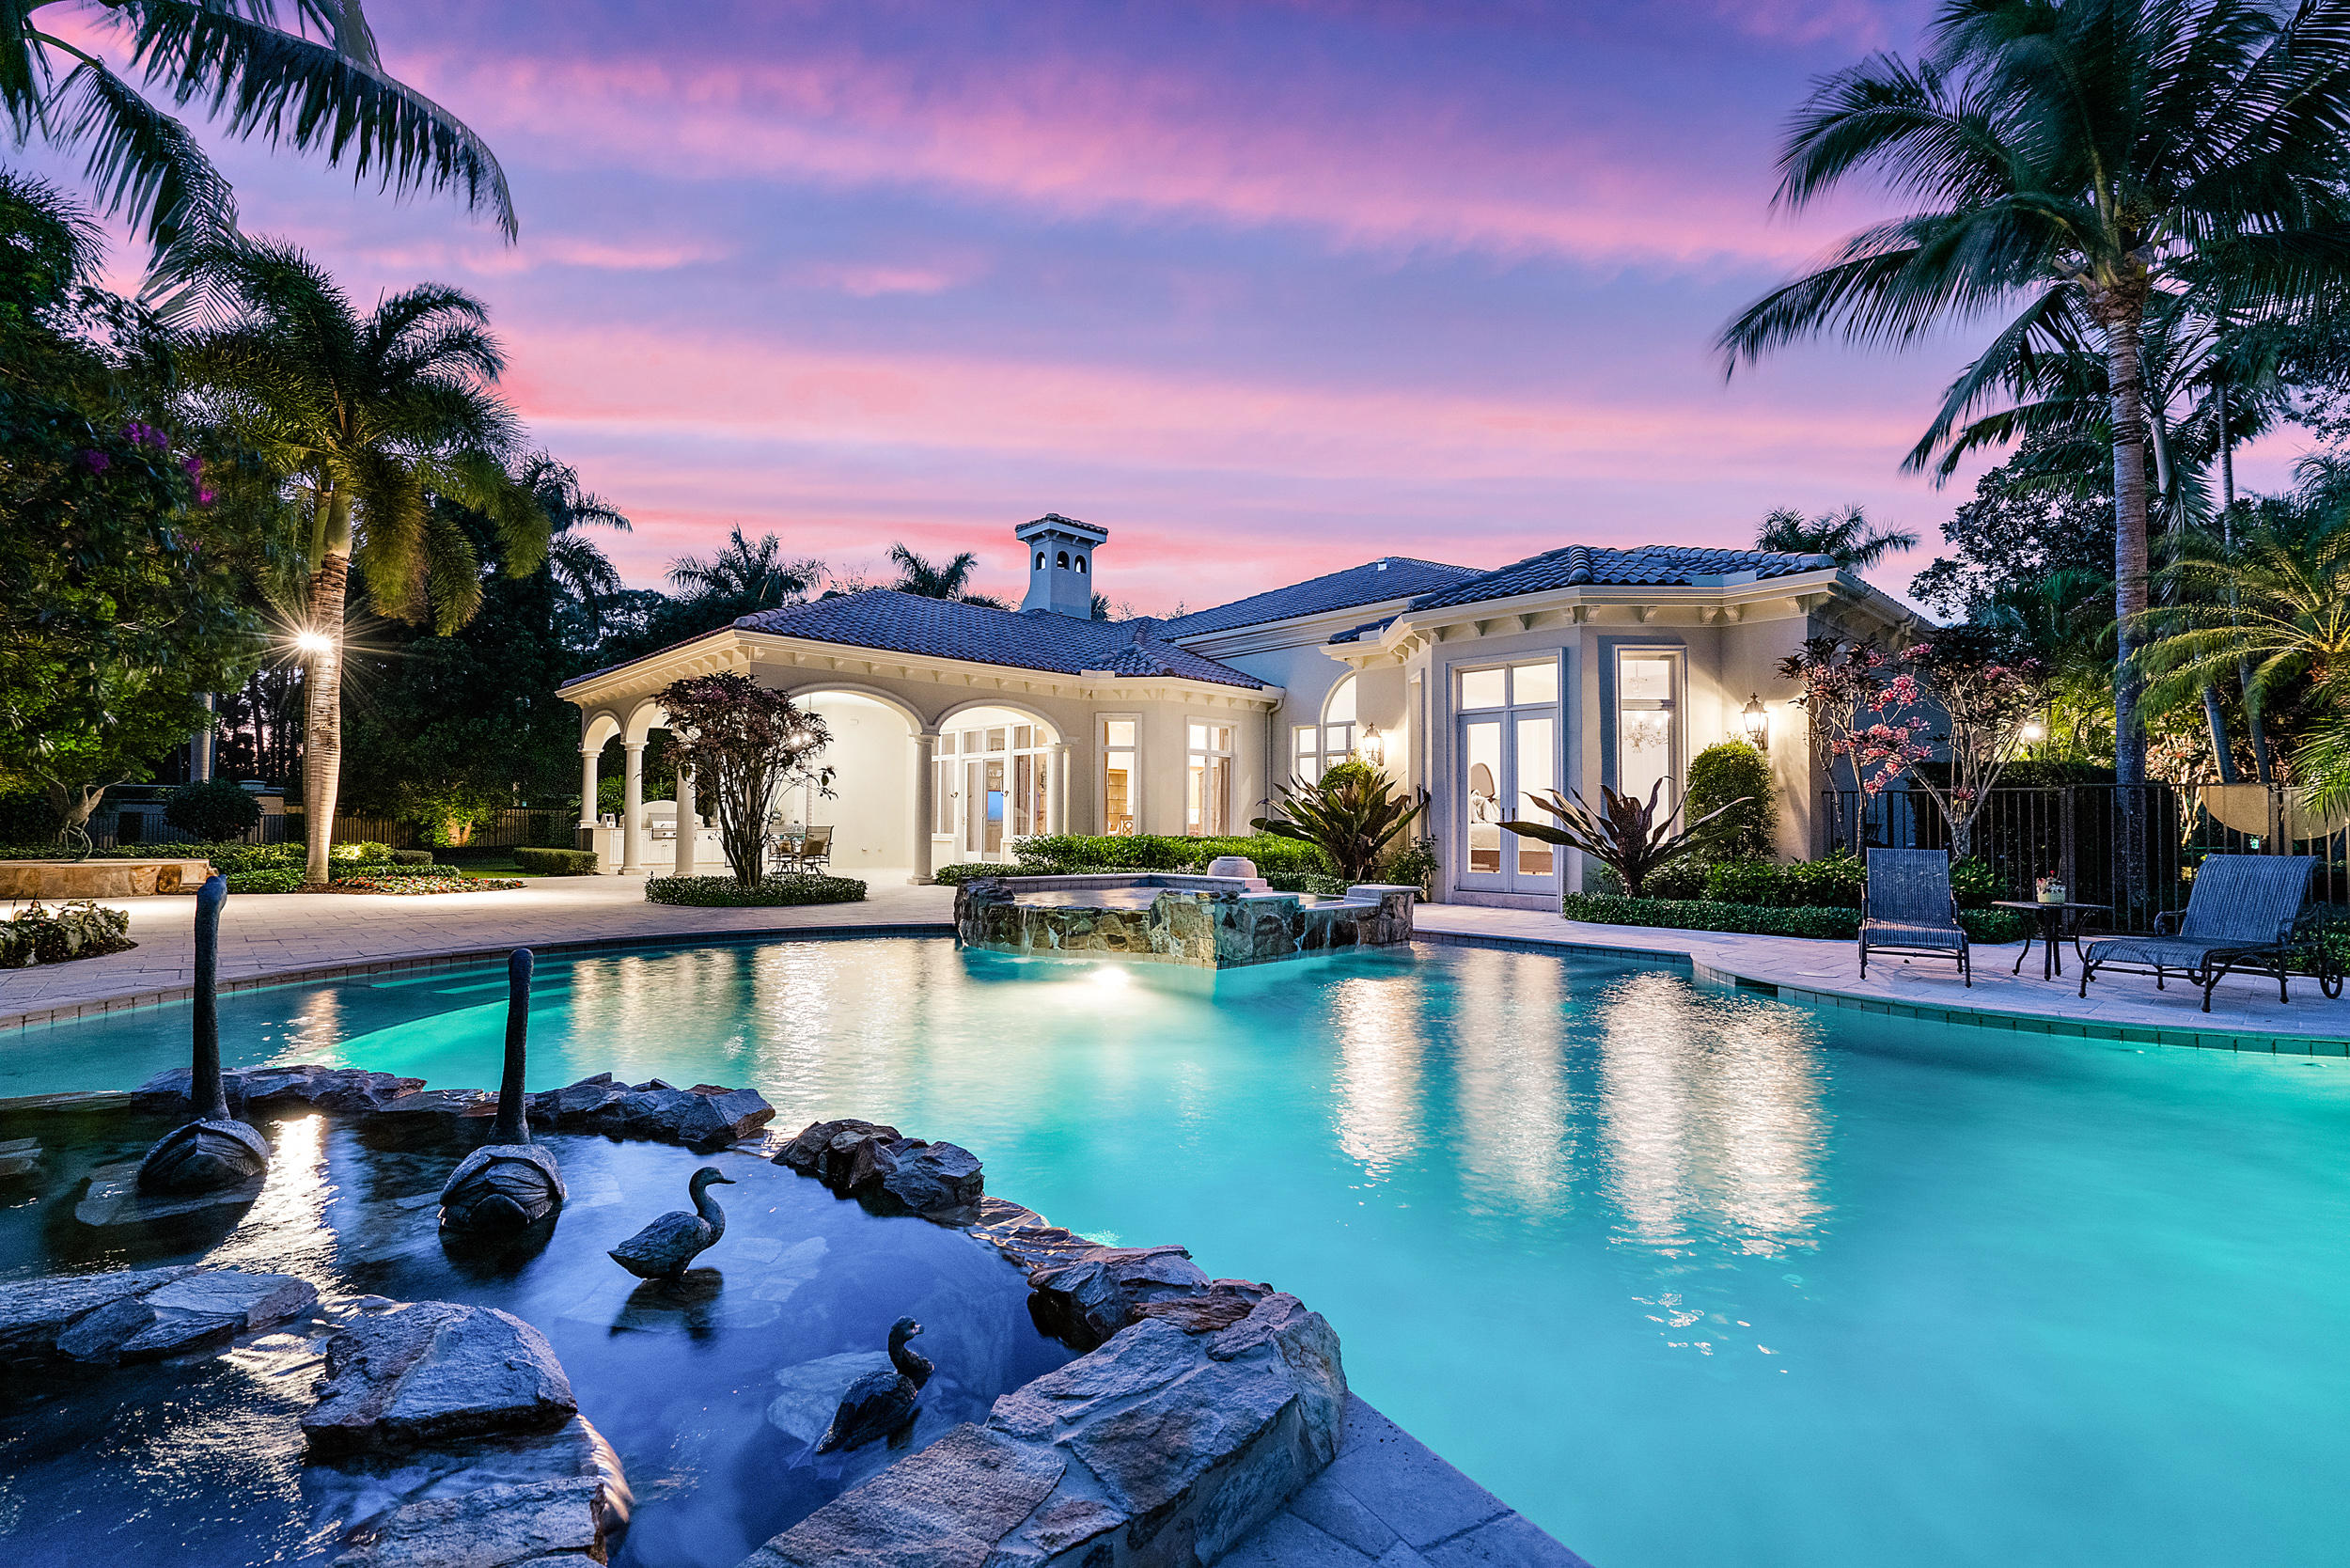 Home for sale in old palm Palm Beach Gardens Florida